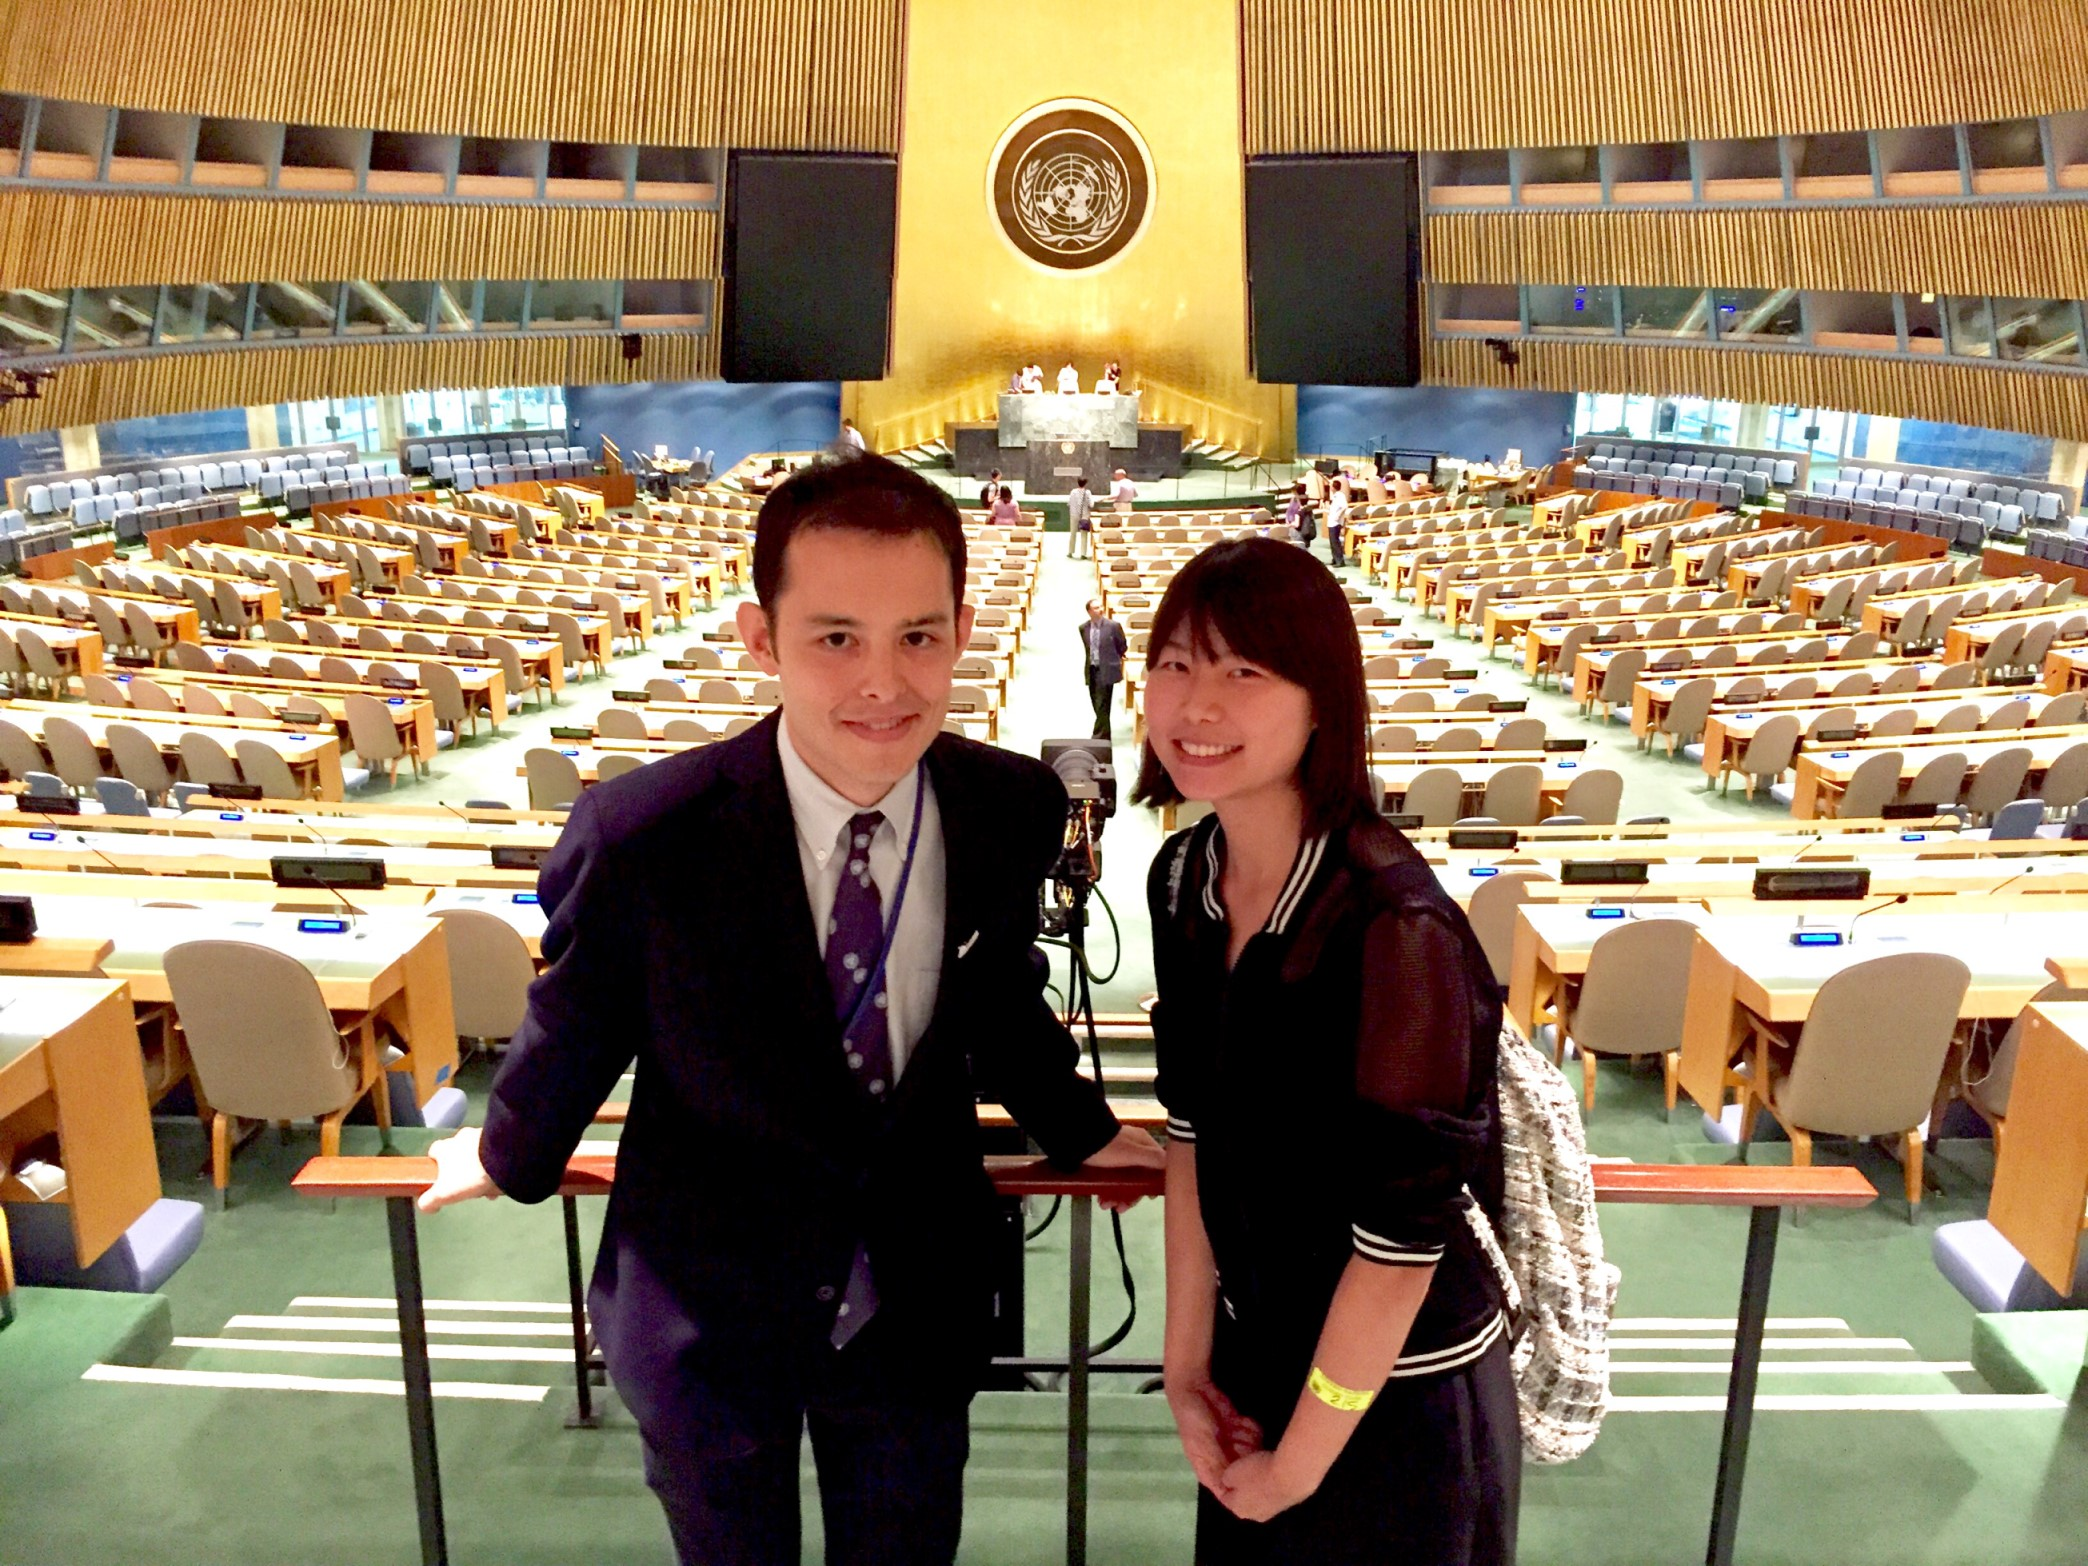 Our first photo together at the United Nations building, where Karin gave me a tour.